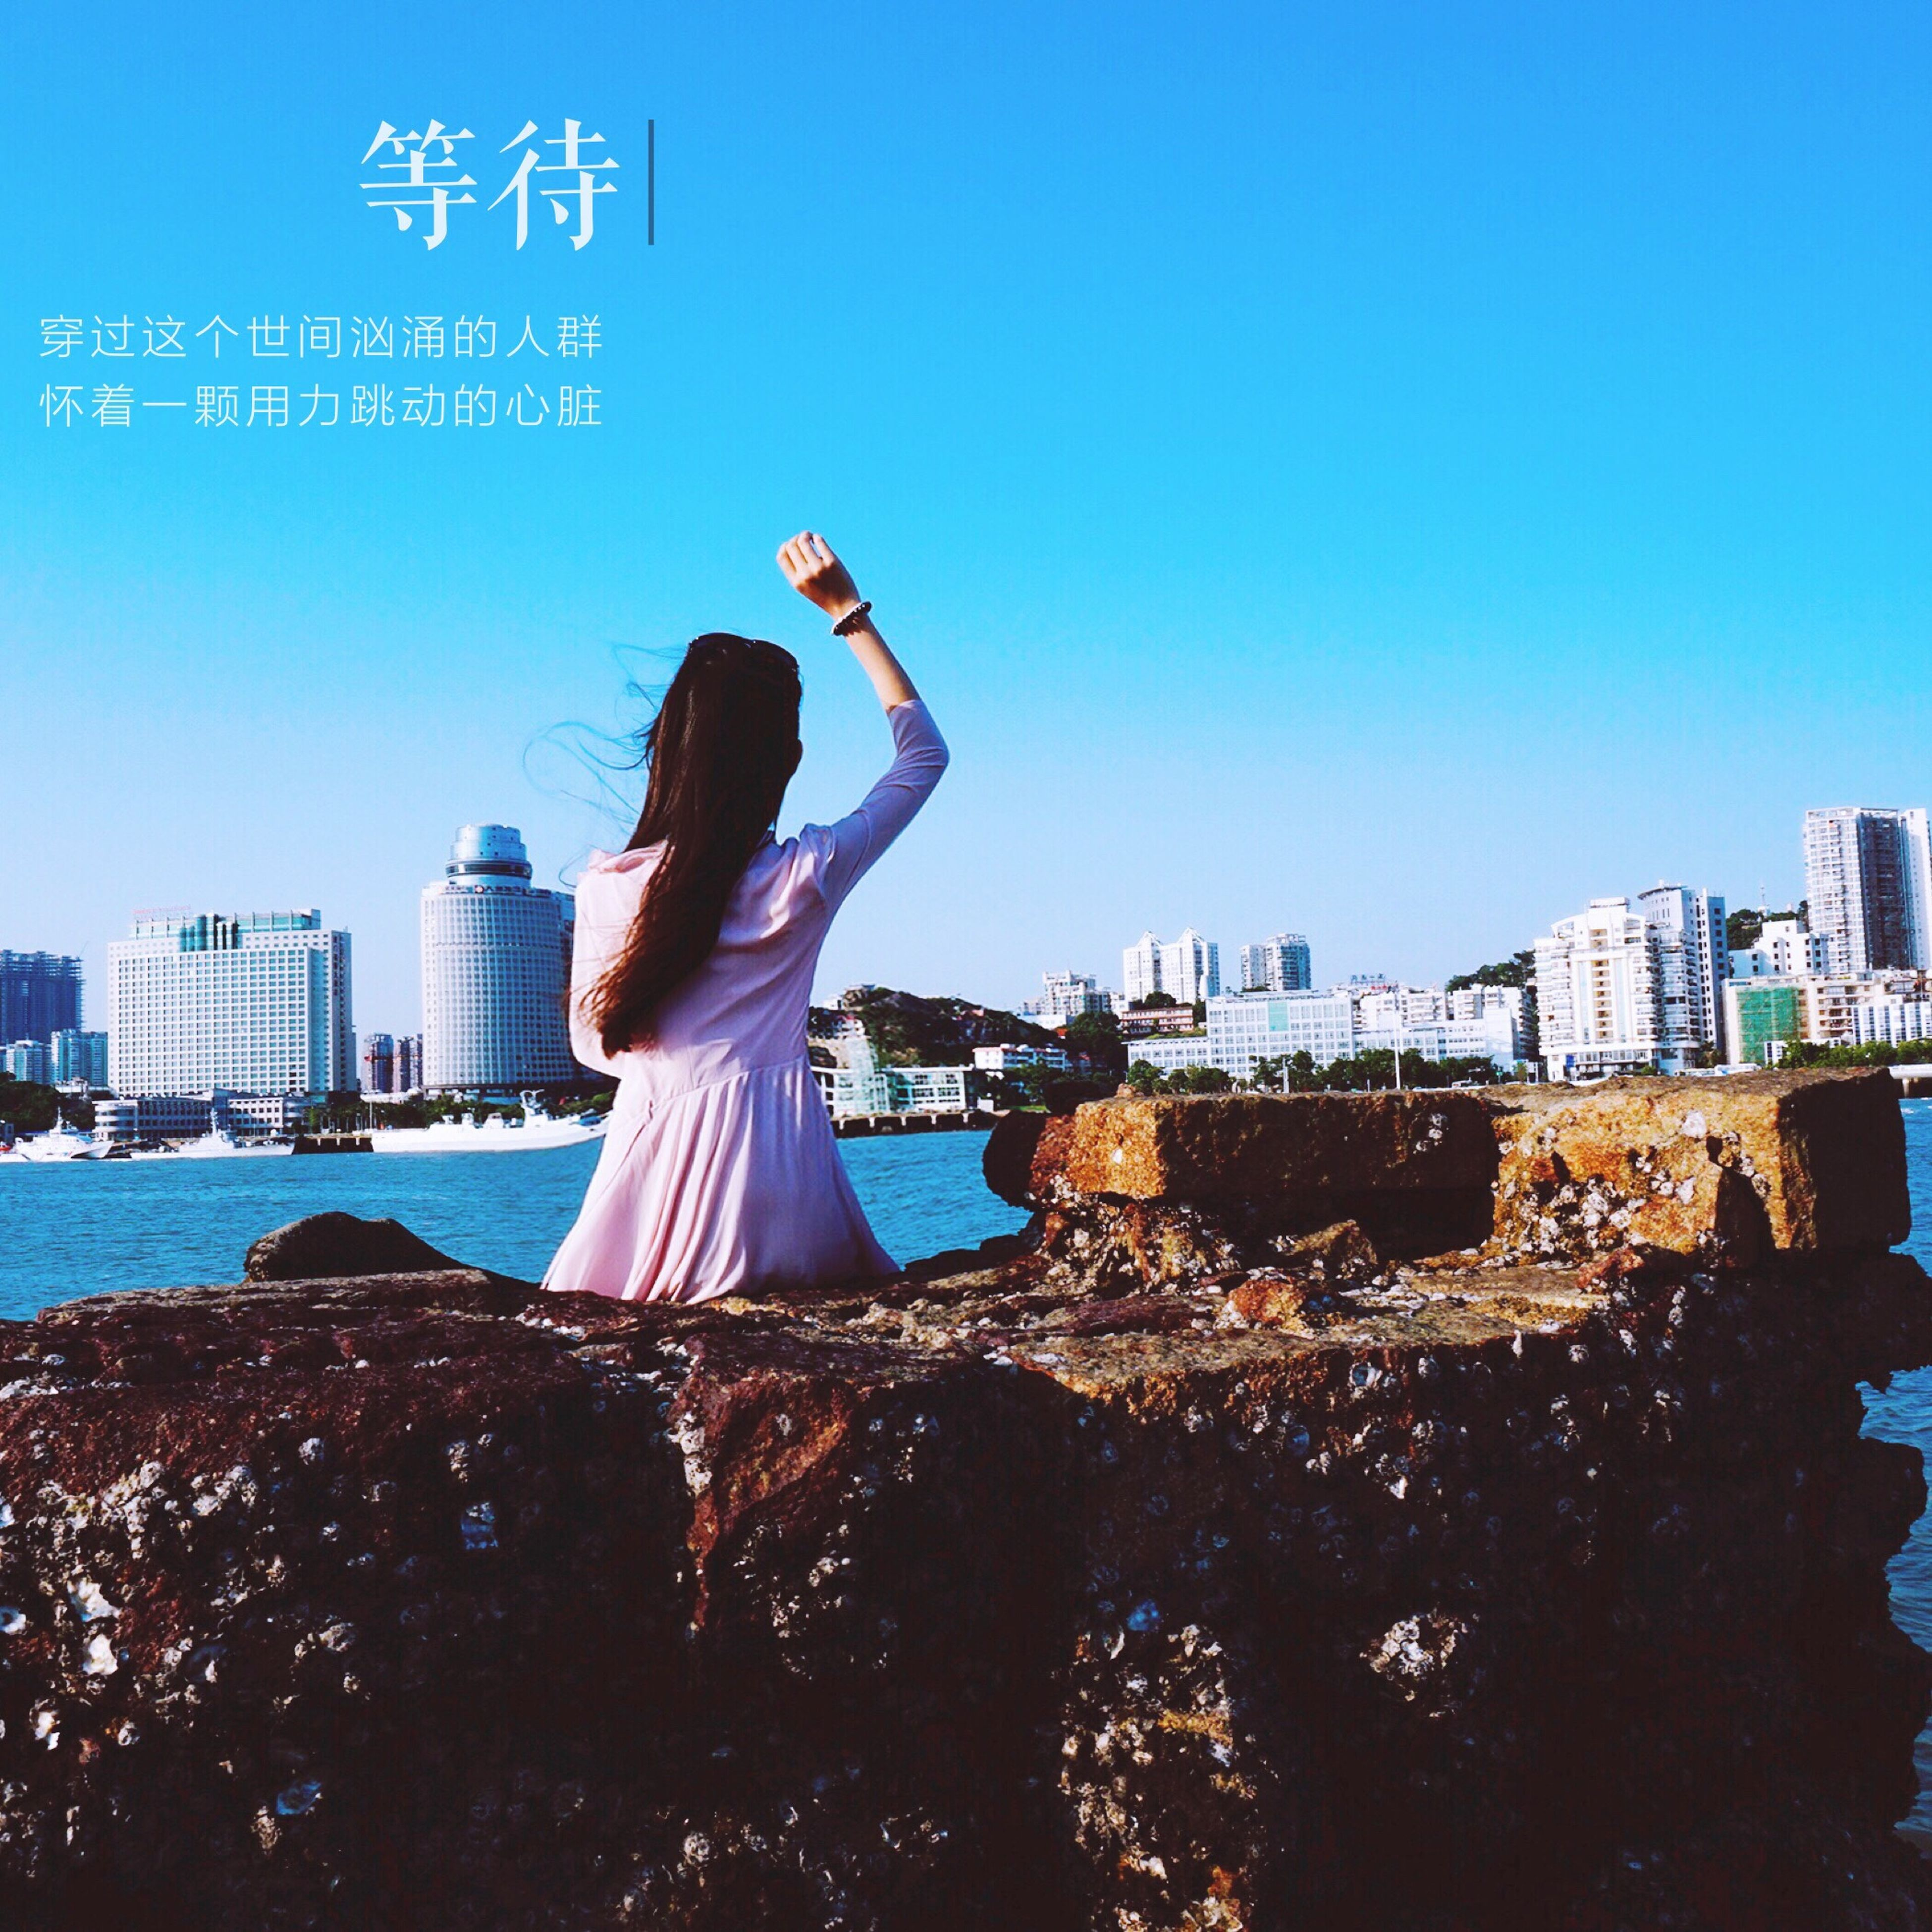 real people, clear sky, rear view, one person, architecture, built structure, building exterior, outdoors, standing, city, cityscape, day, skyscraper, sky, blue, leisure activity, women, full length, modern, sea, urban skyline, young adult, adult, people